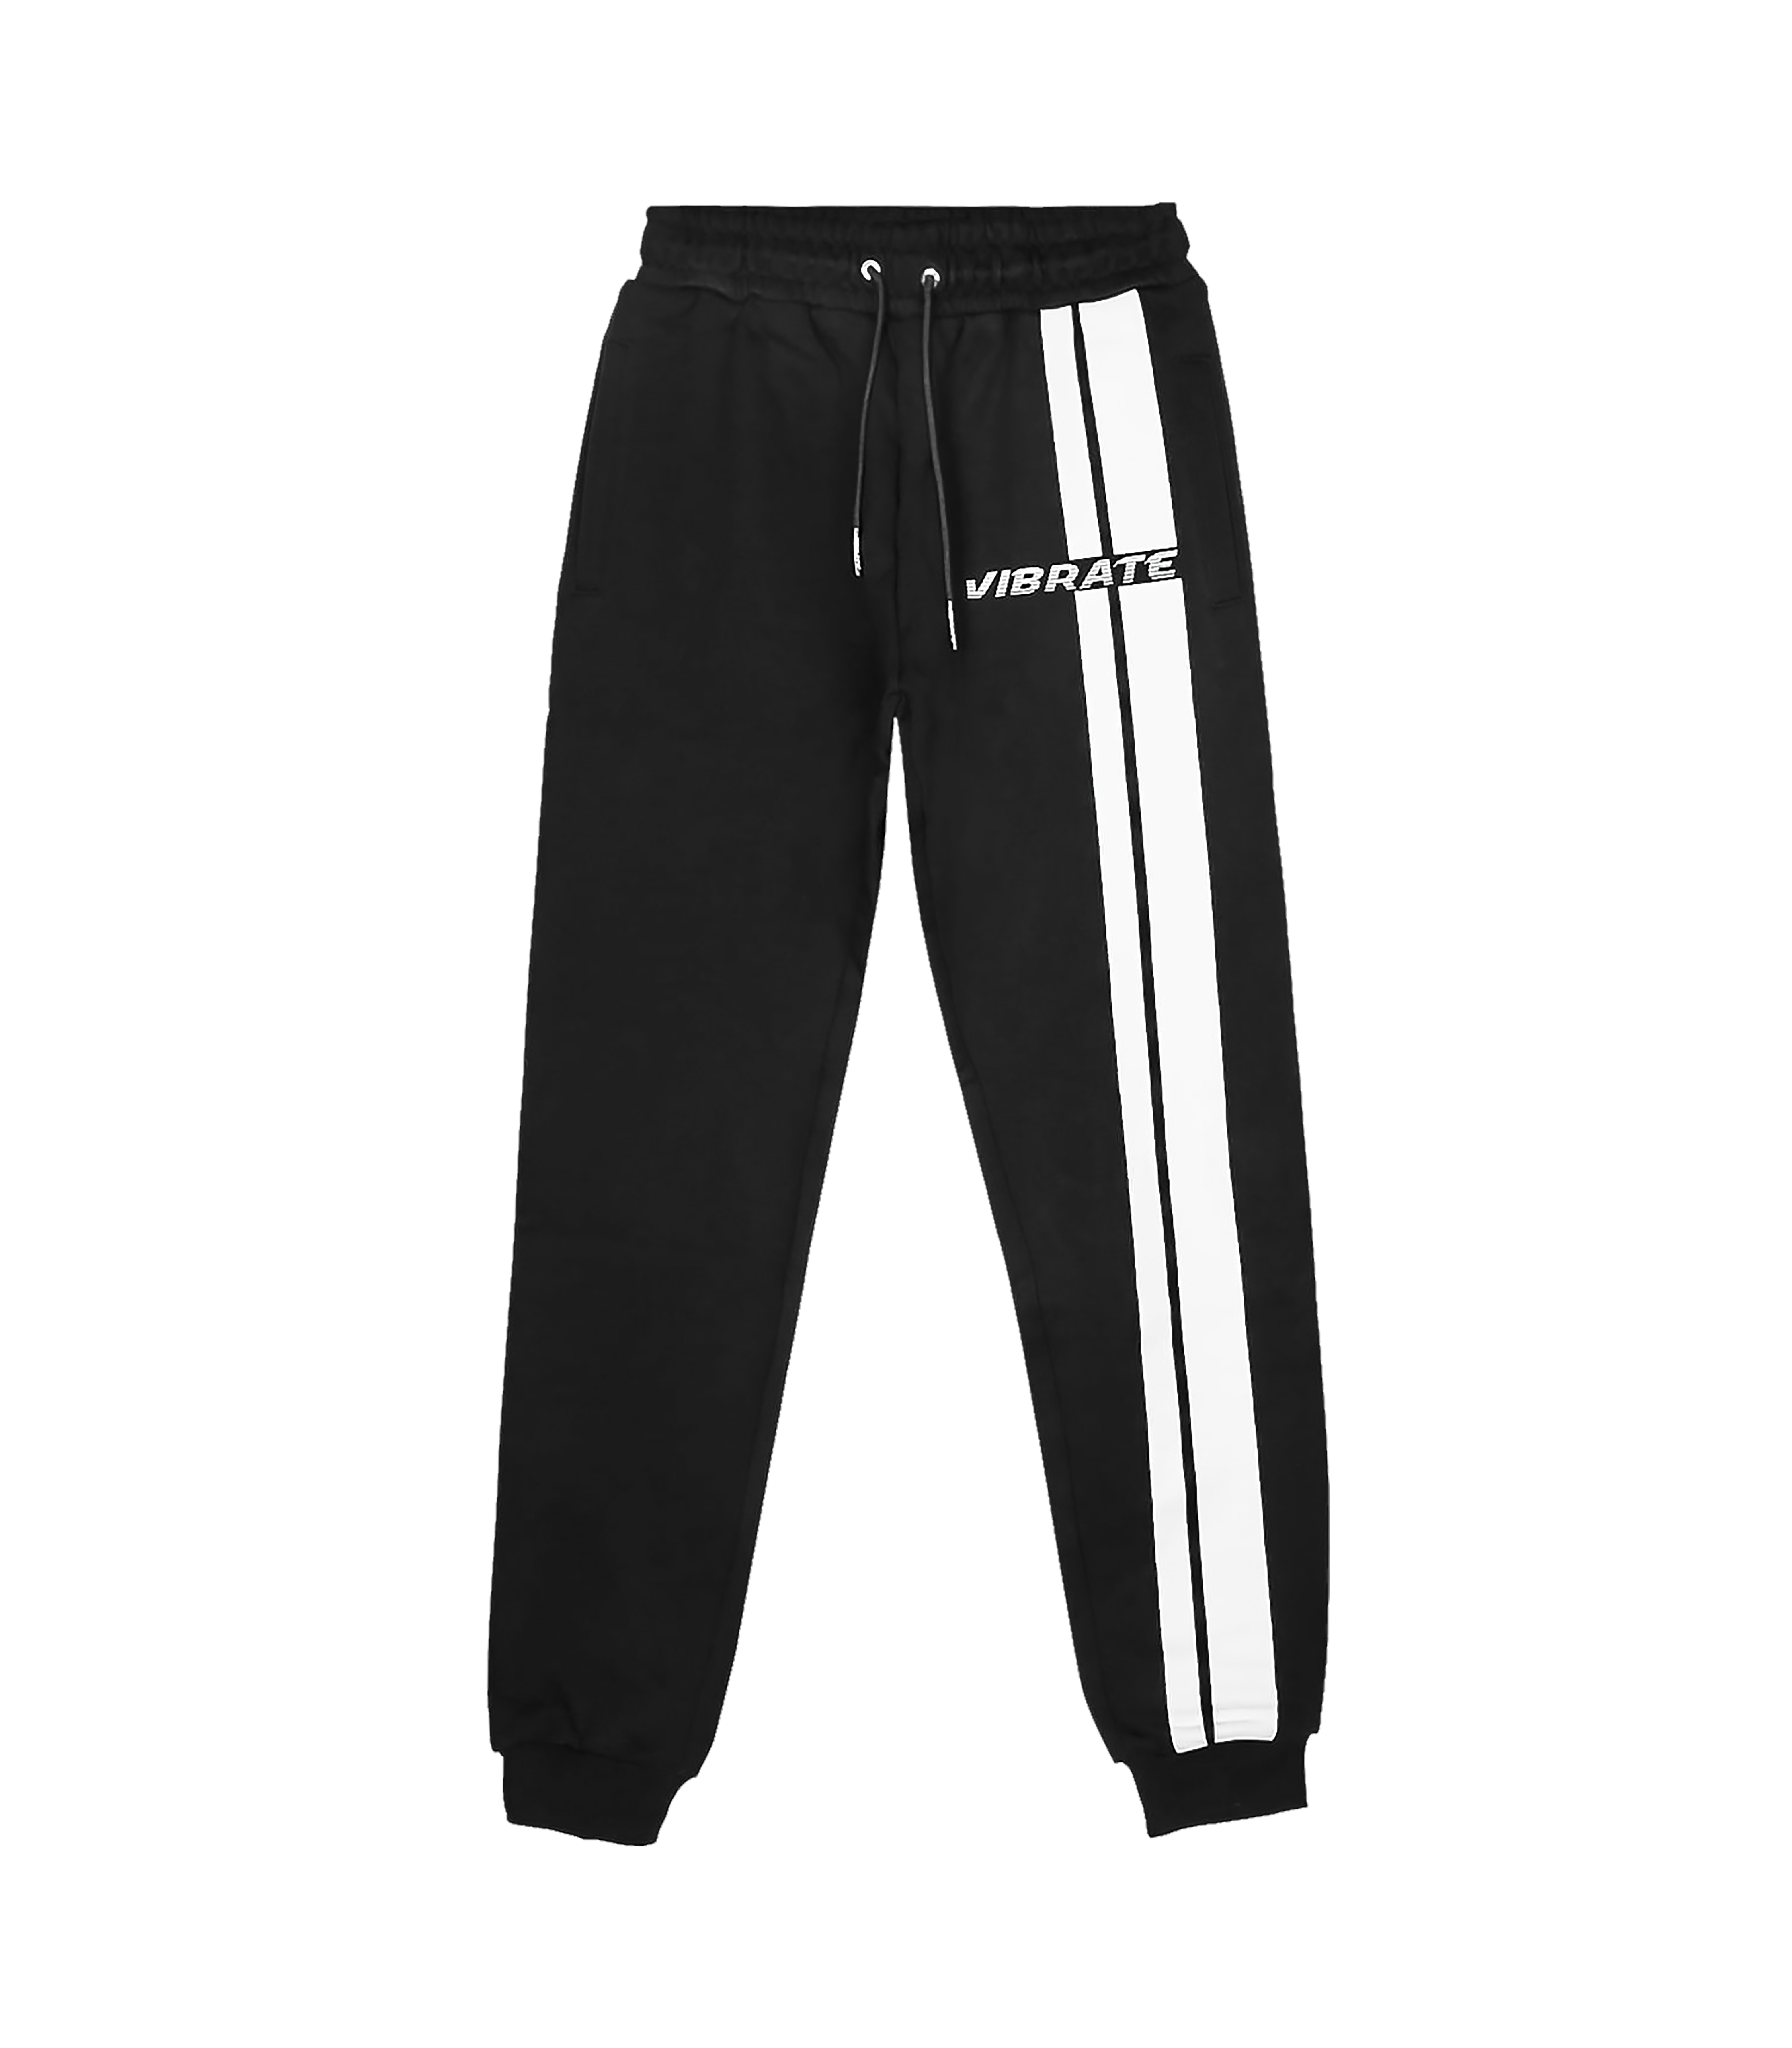 VIBRATE - TRAFFIC ROAD LOGO JOGGER PANTS (BLACK)